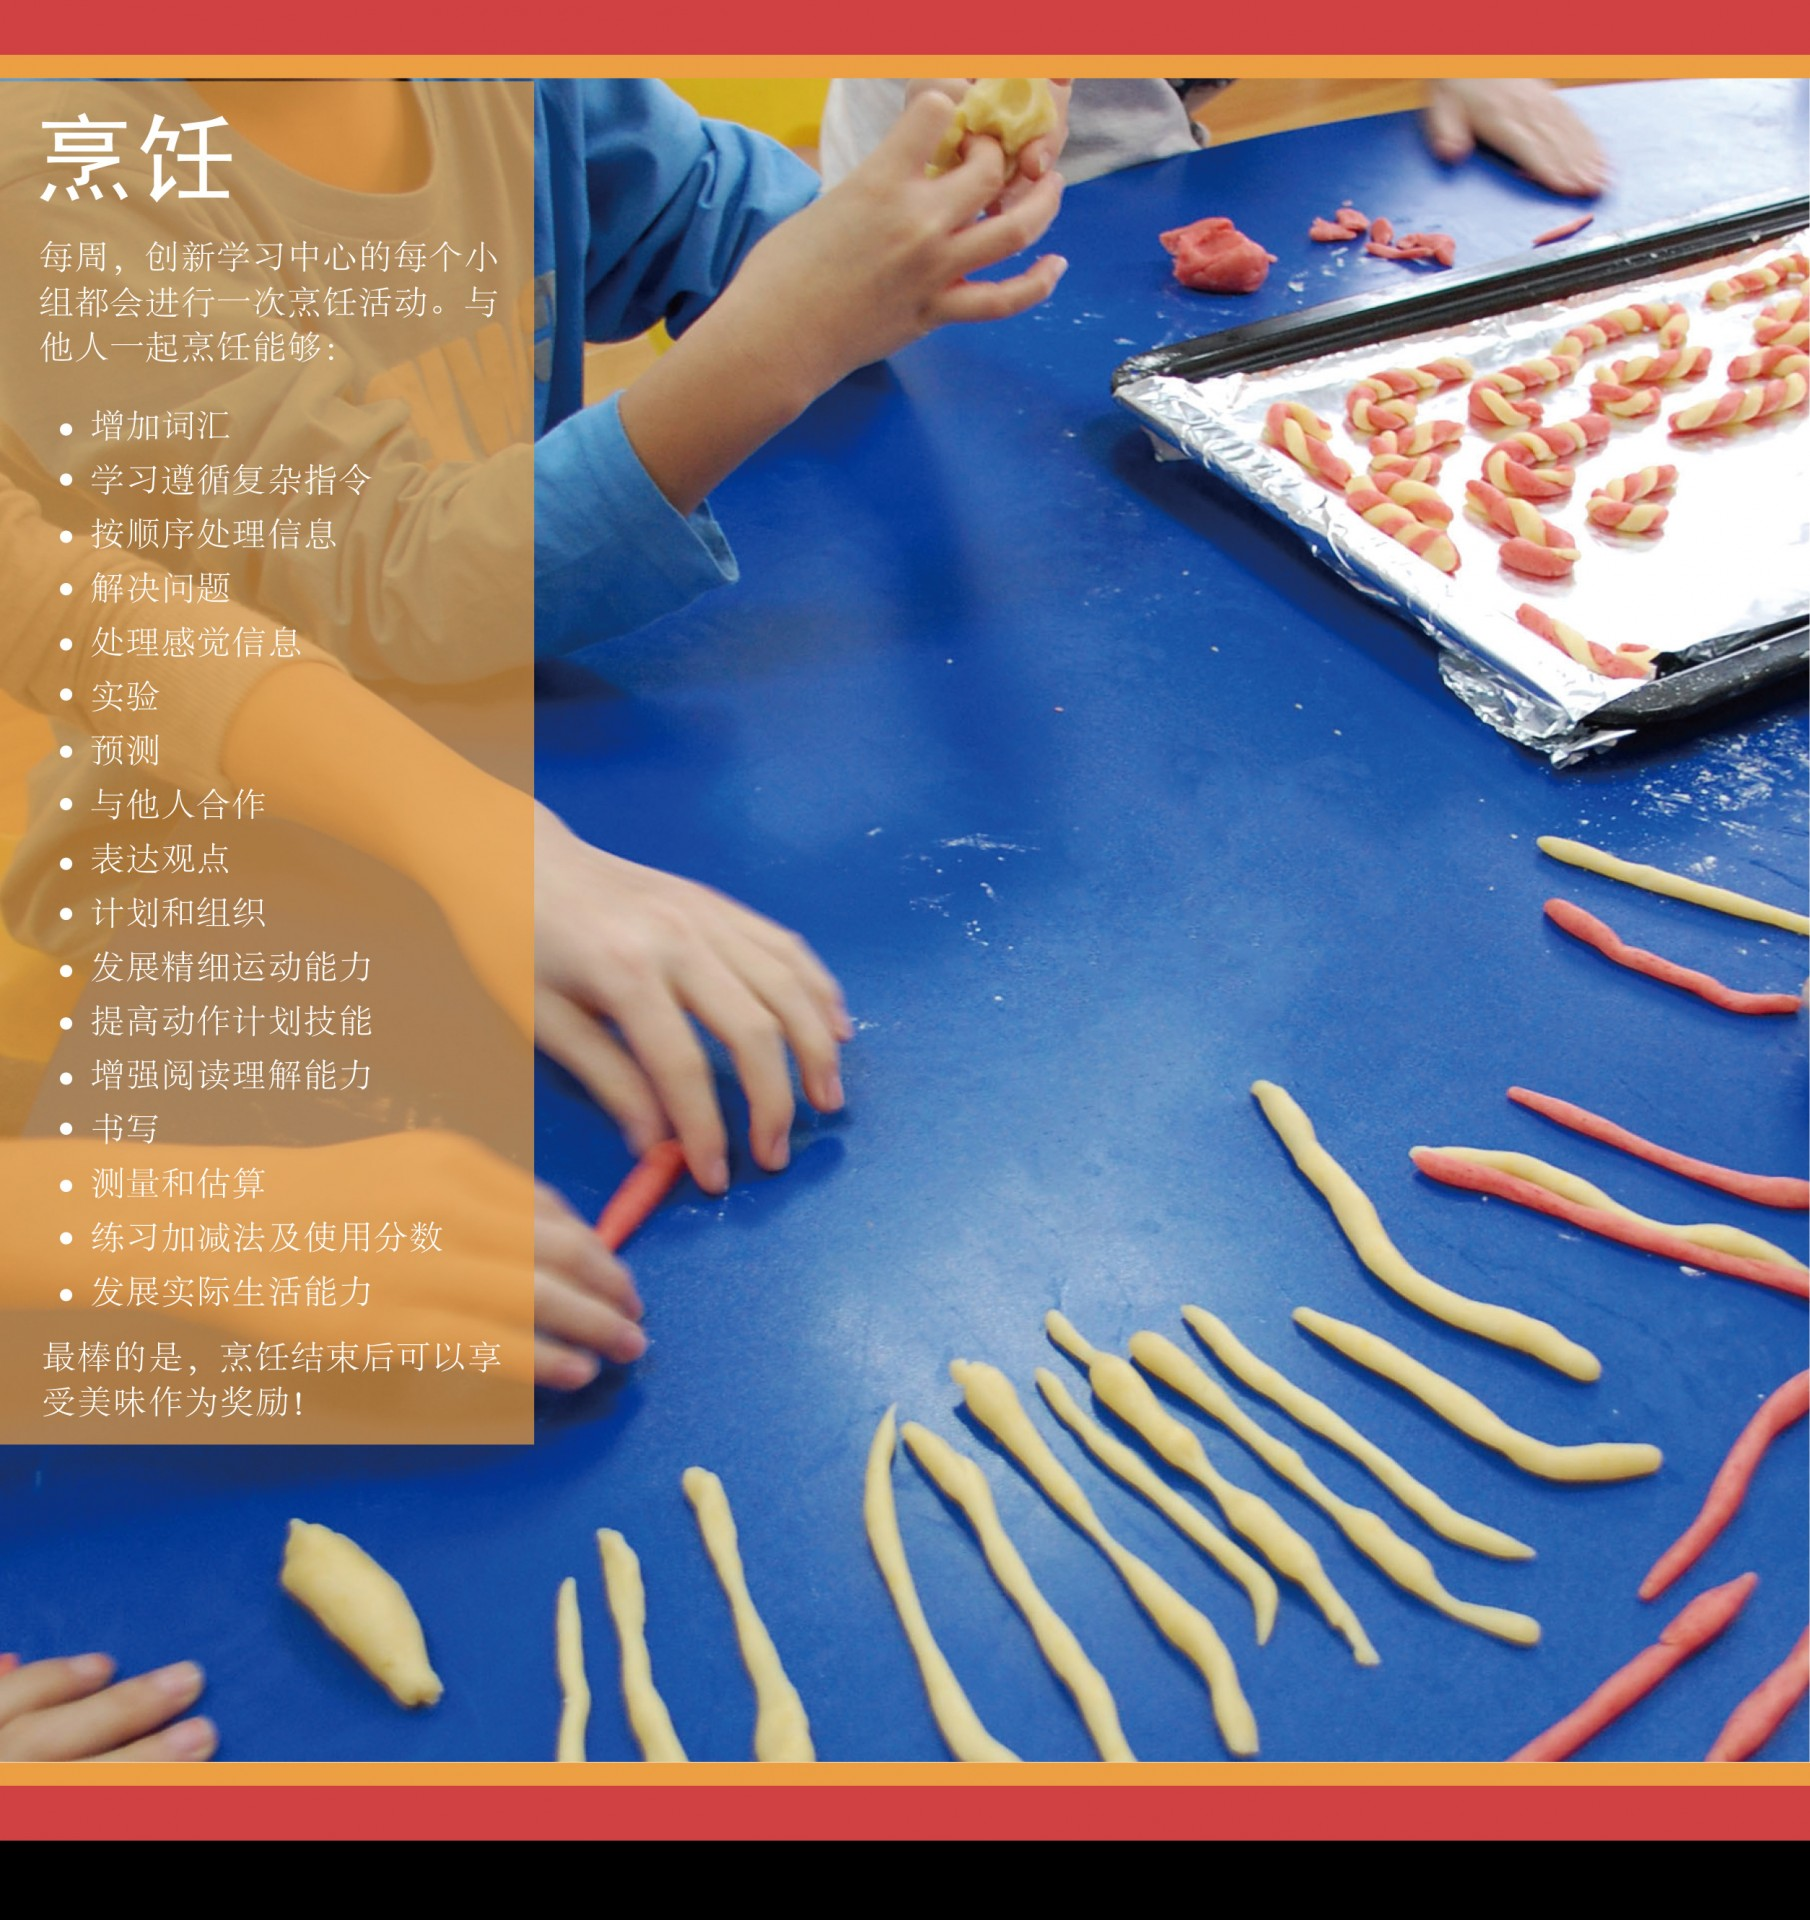 _ILC-Brochure-Chinese-10_02